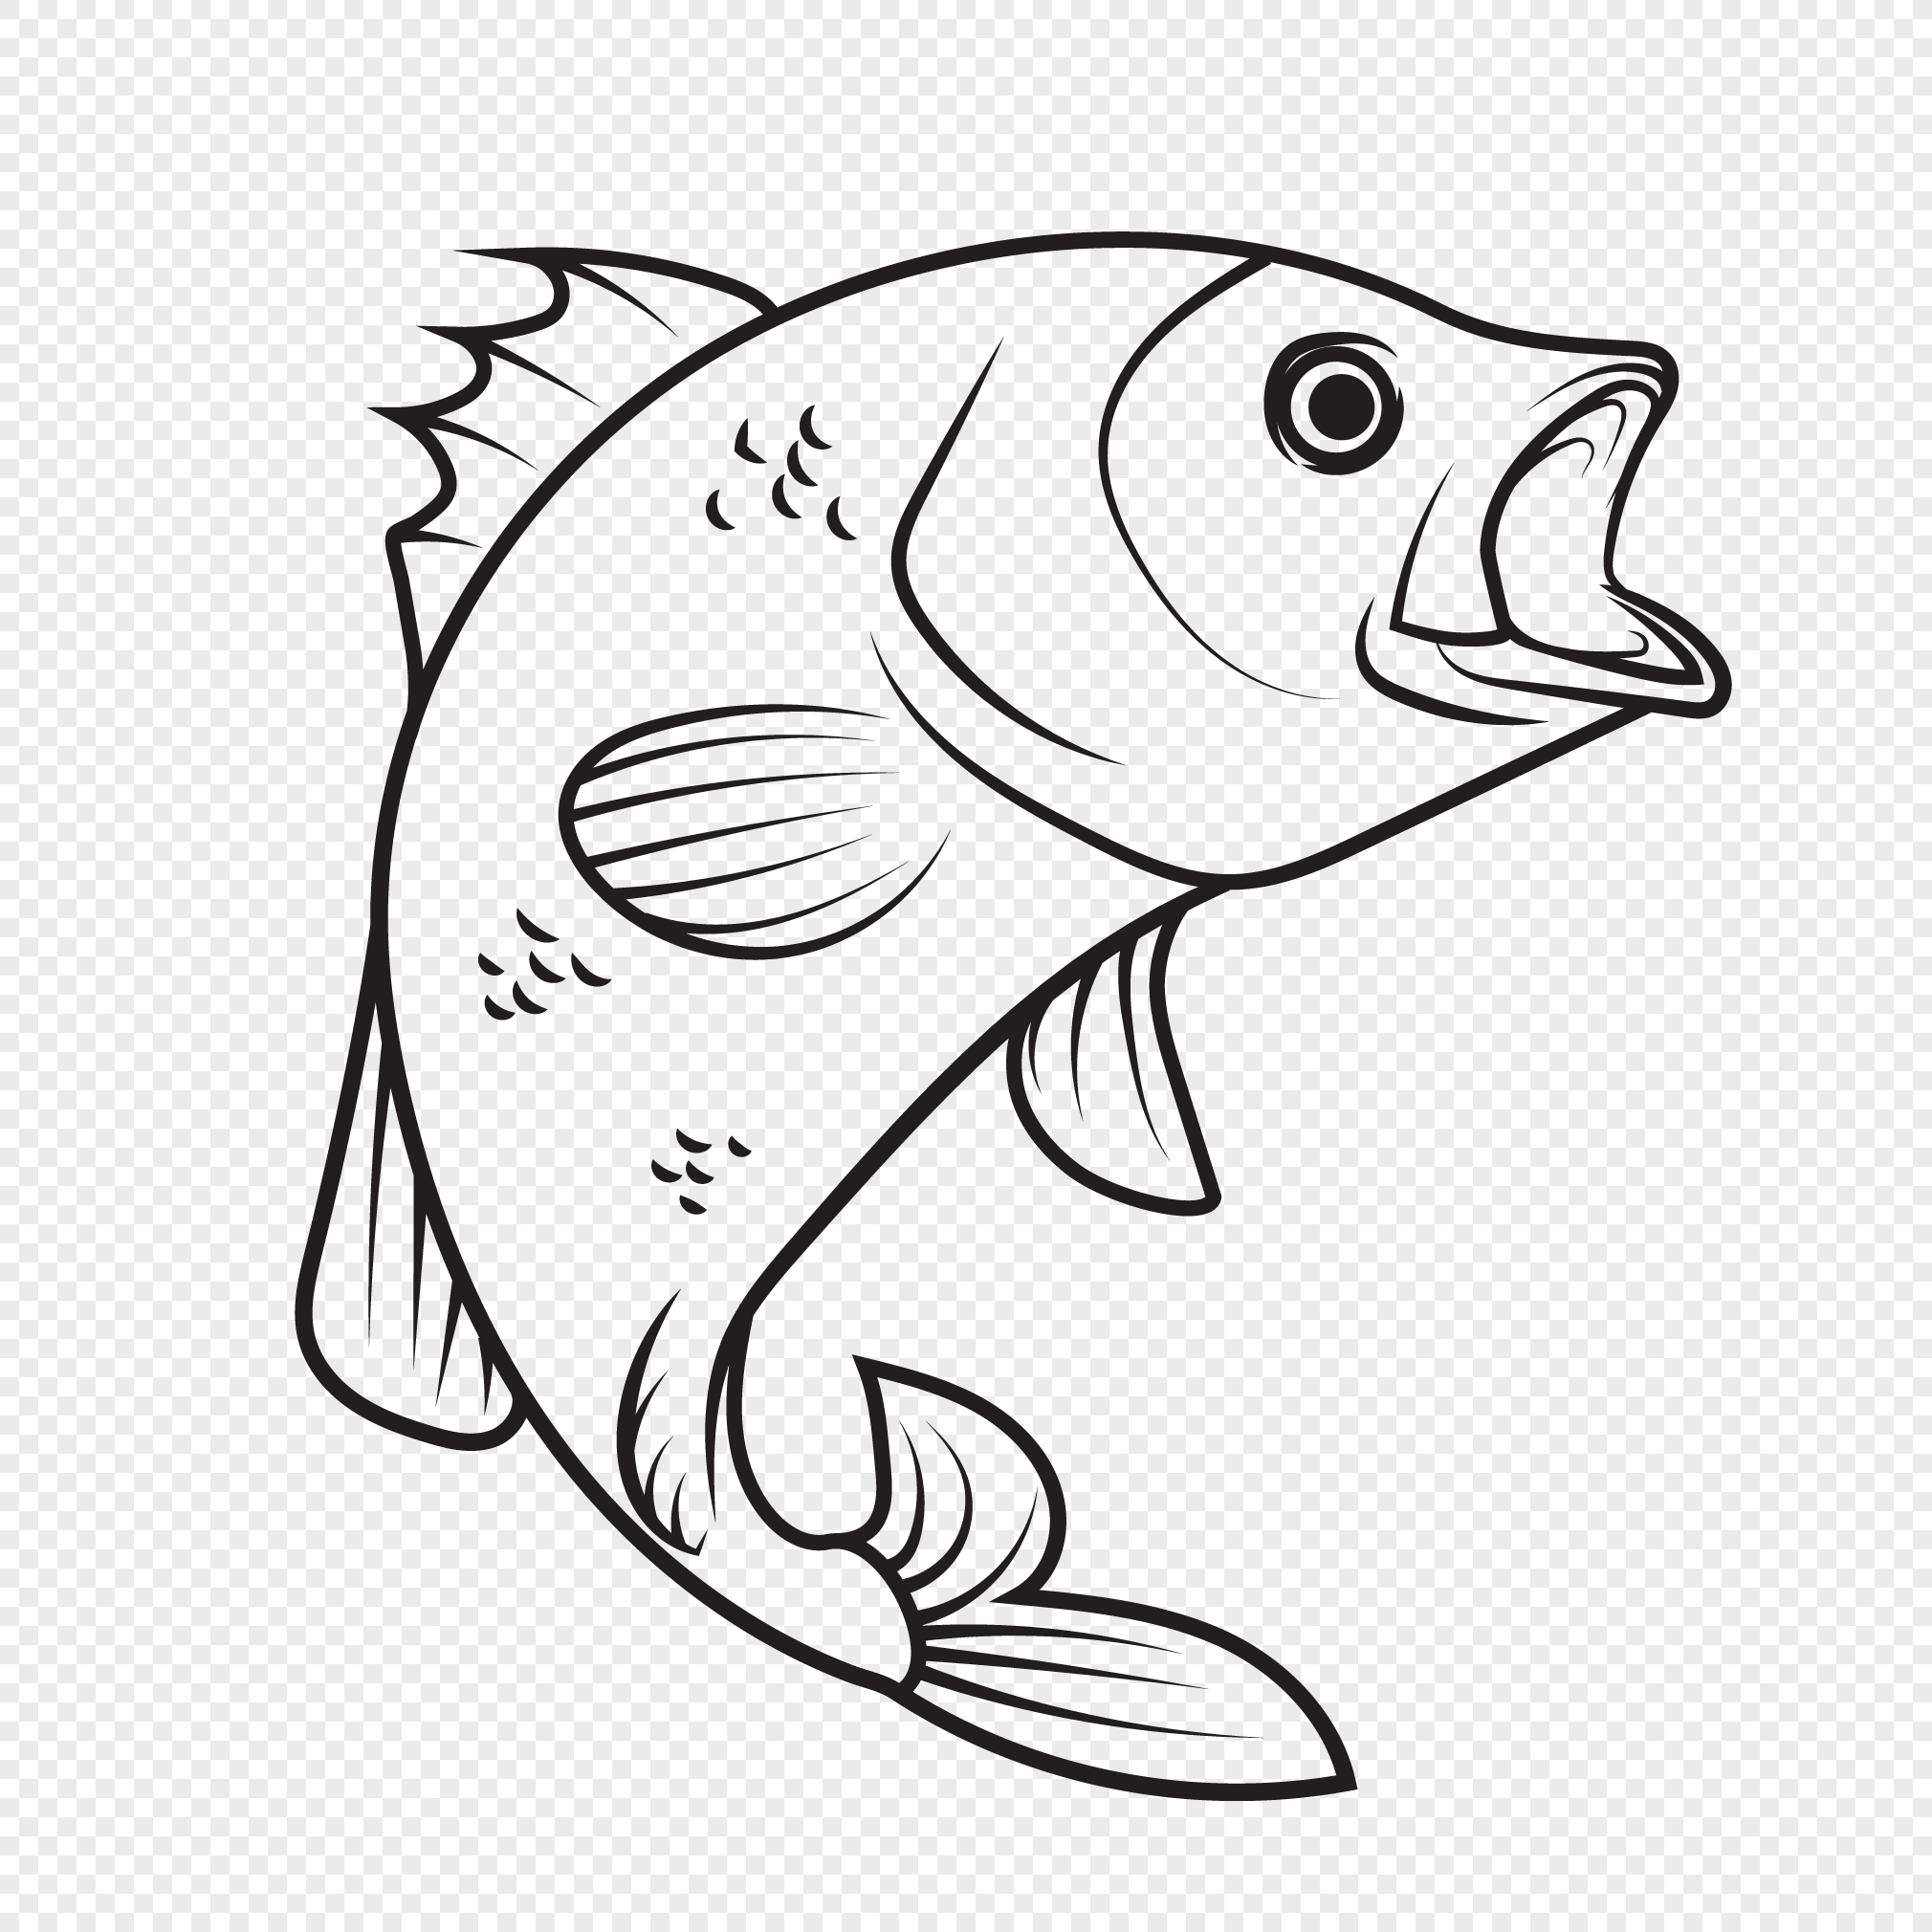 Hand drawn line drawing fish vector elements png image ...